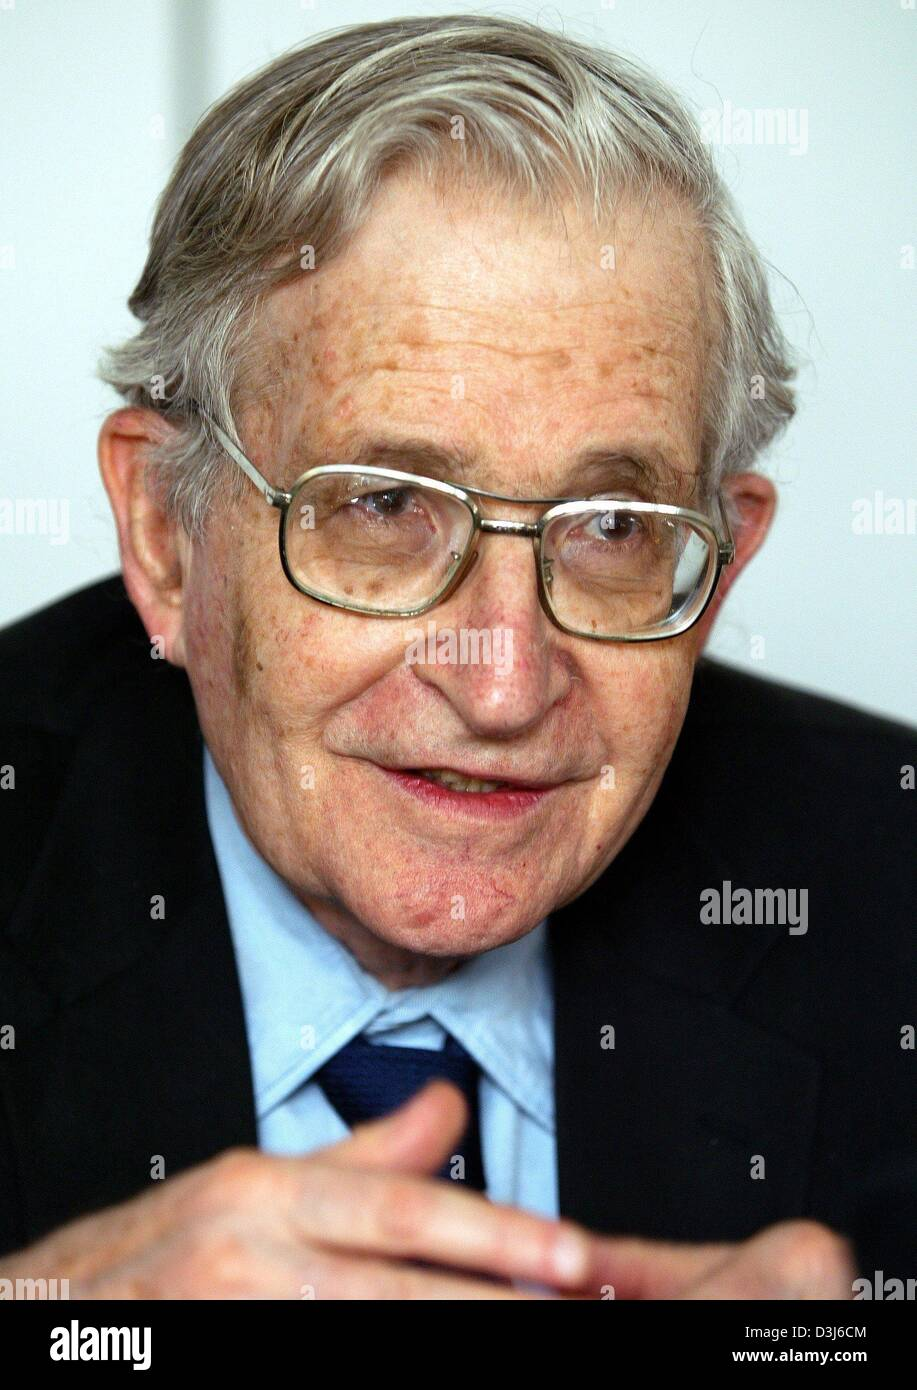 (dpa) - Noam Chomsky, social critic and professor for linguistics and philosophy, speaks during a press conference - Stock Image